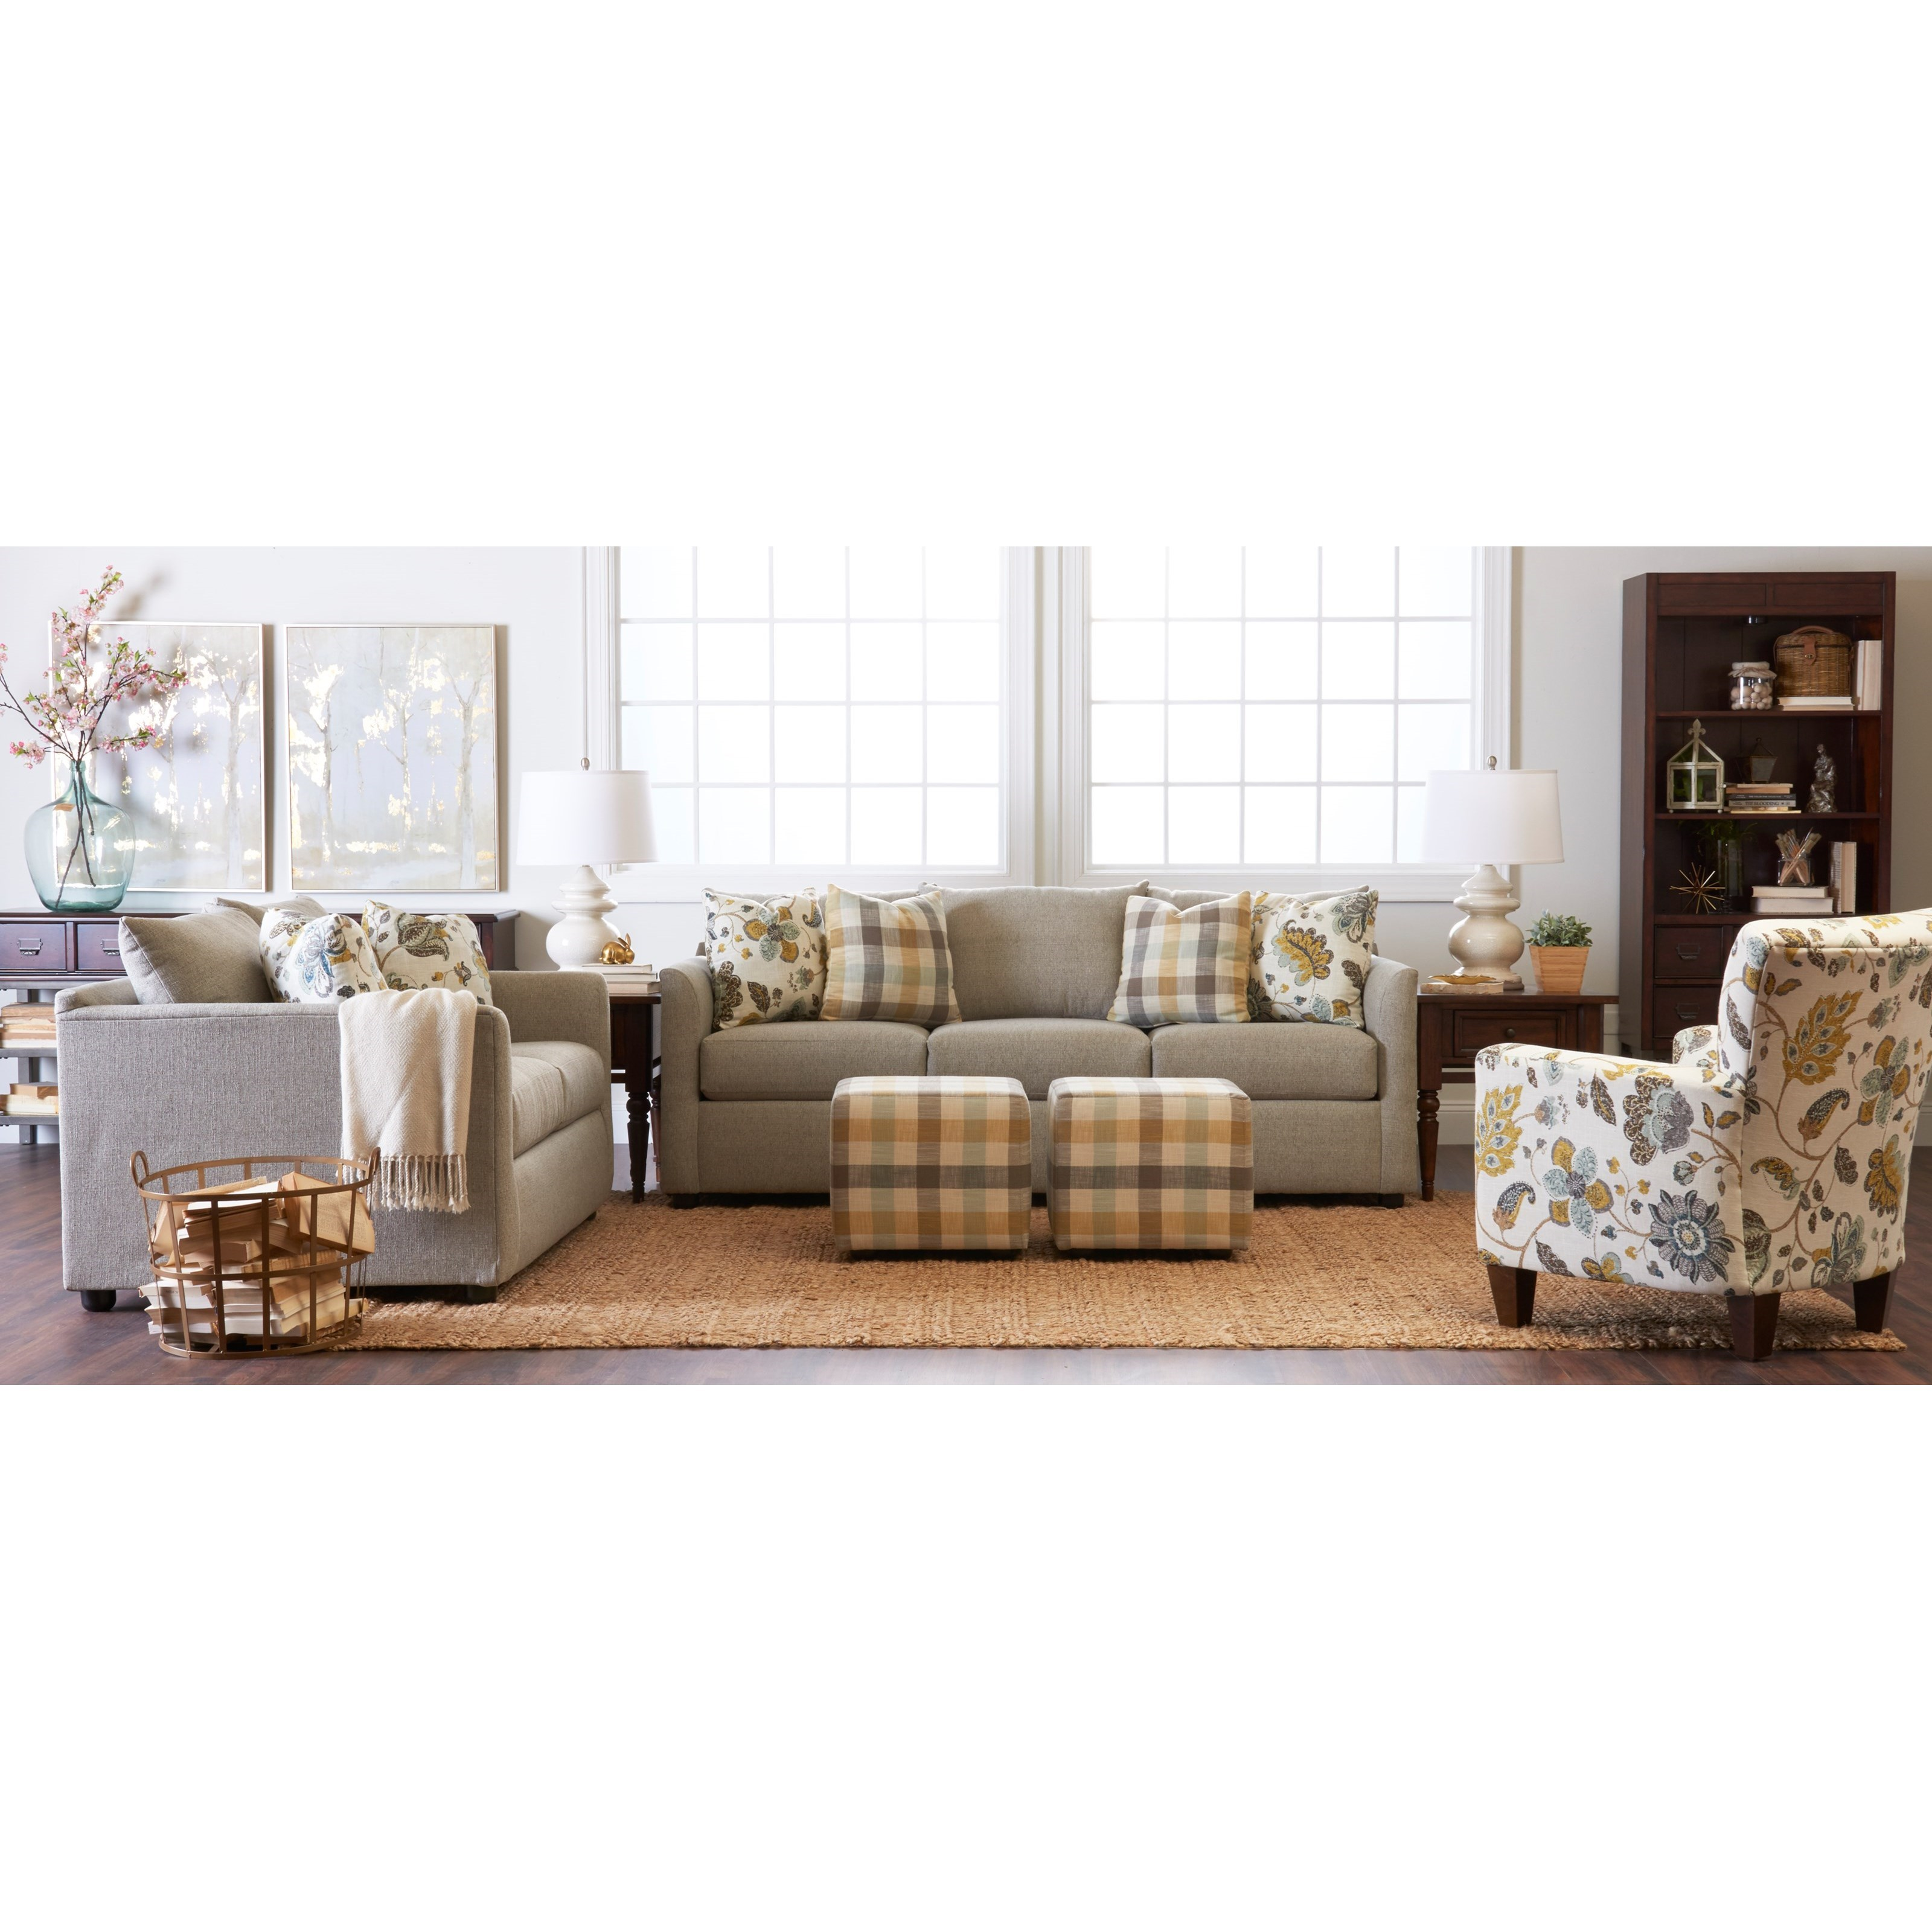 Atlanta Stationary Living Room Group by Klaussner at Northeast Factory Direct